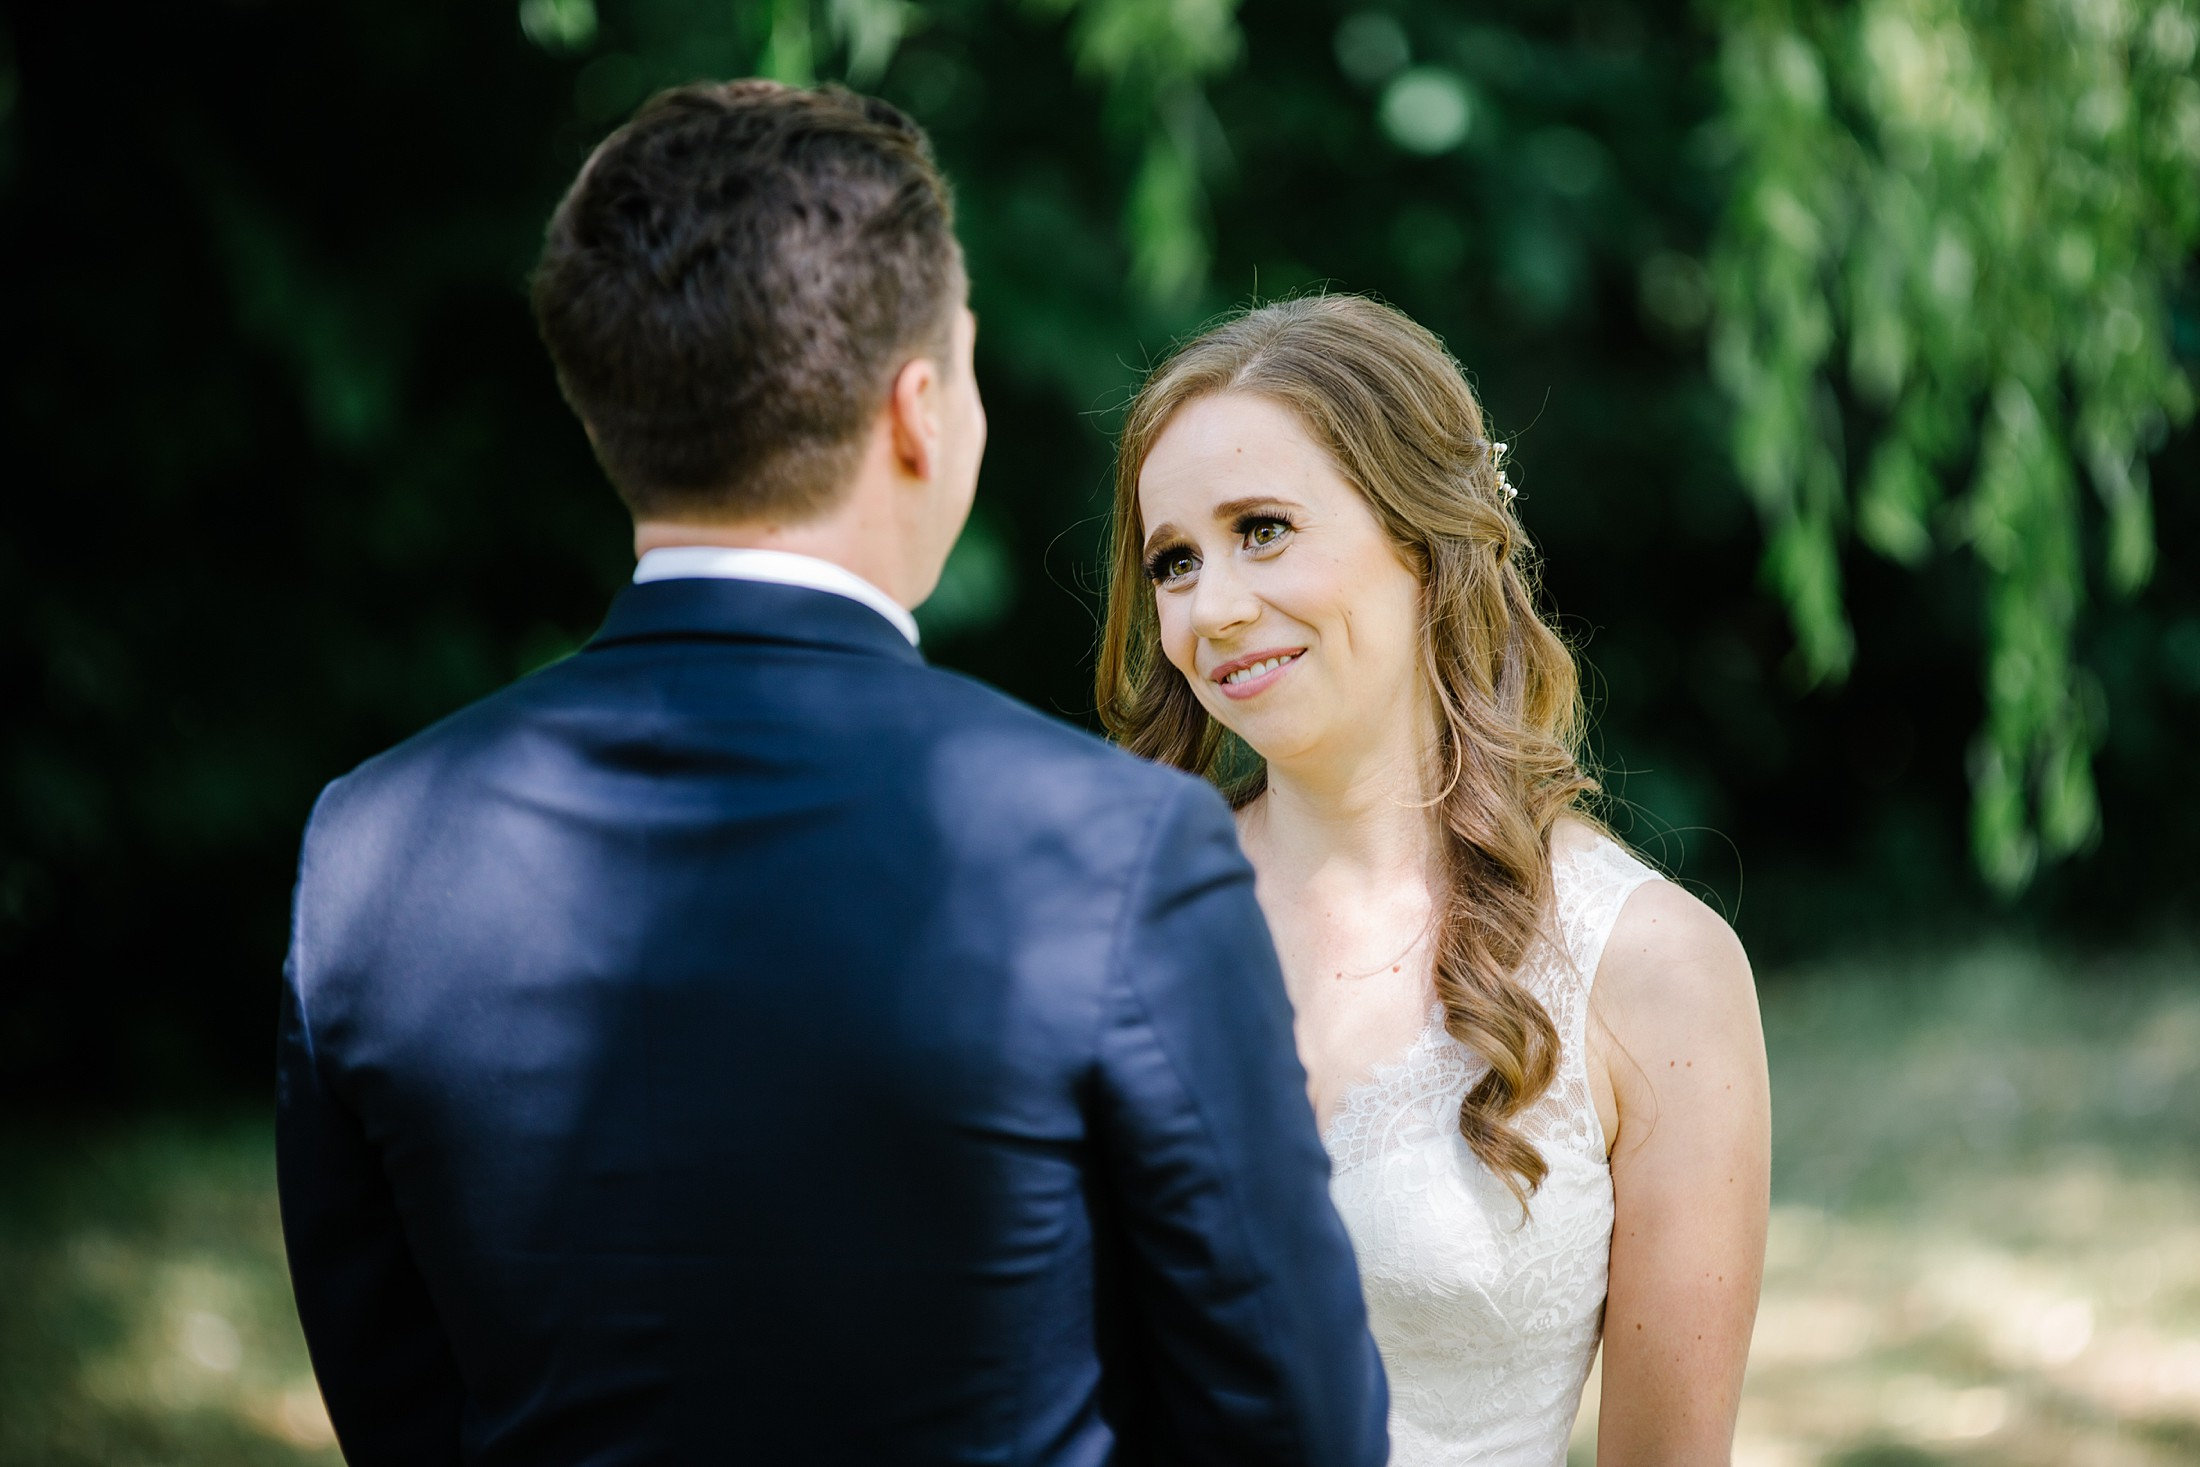 June21.IanEmilie33367_Note Photography Documentary Photographer Wedding Photos Vancouver B.C. Best 2019 2020 Vancouver Island Brock House Restaurant Wedding Jericho Beach Kitsilano.jpg